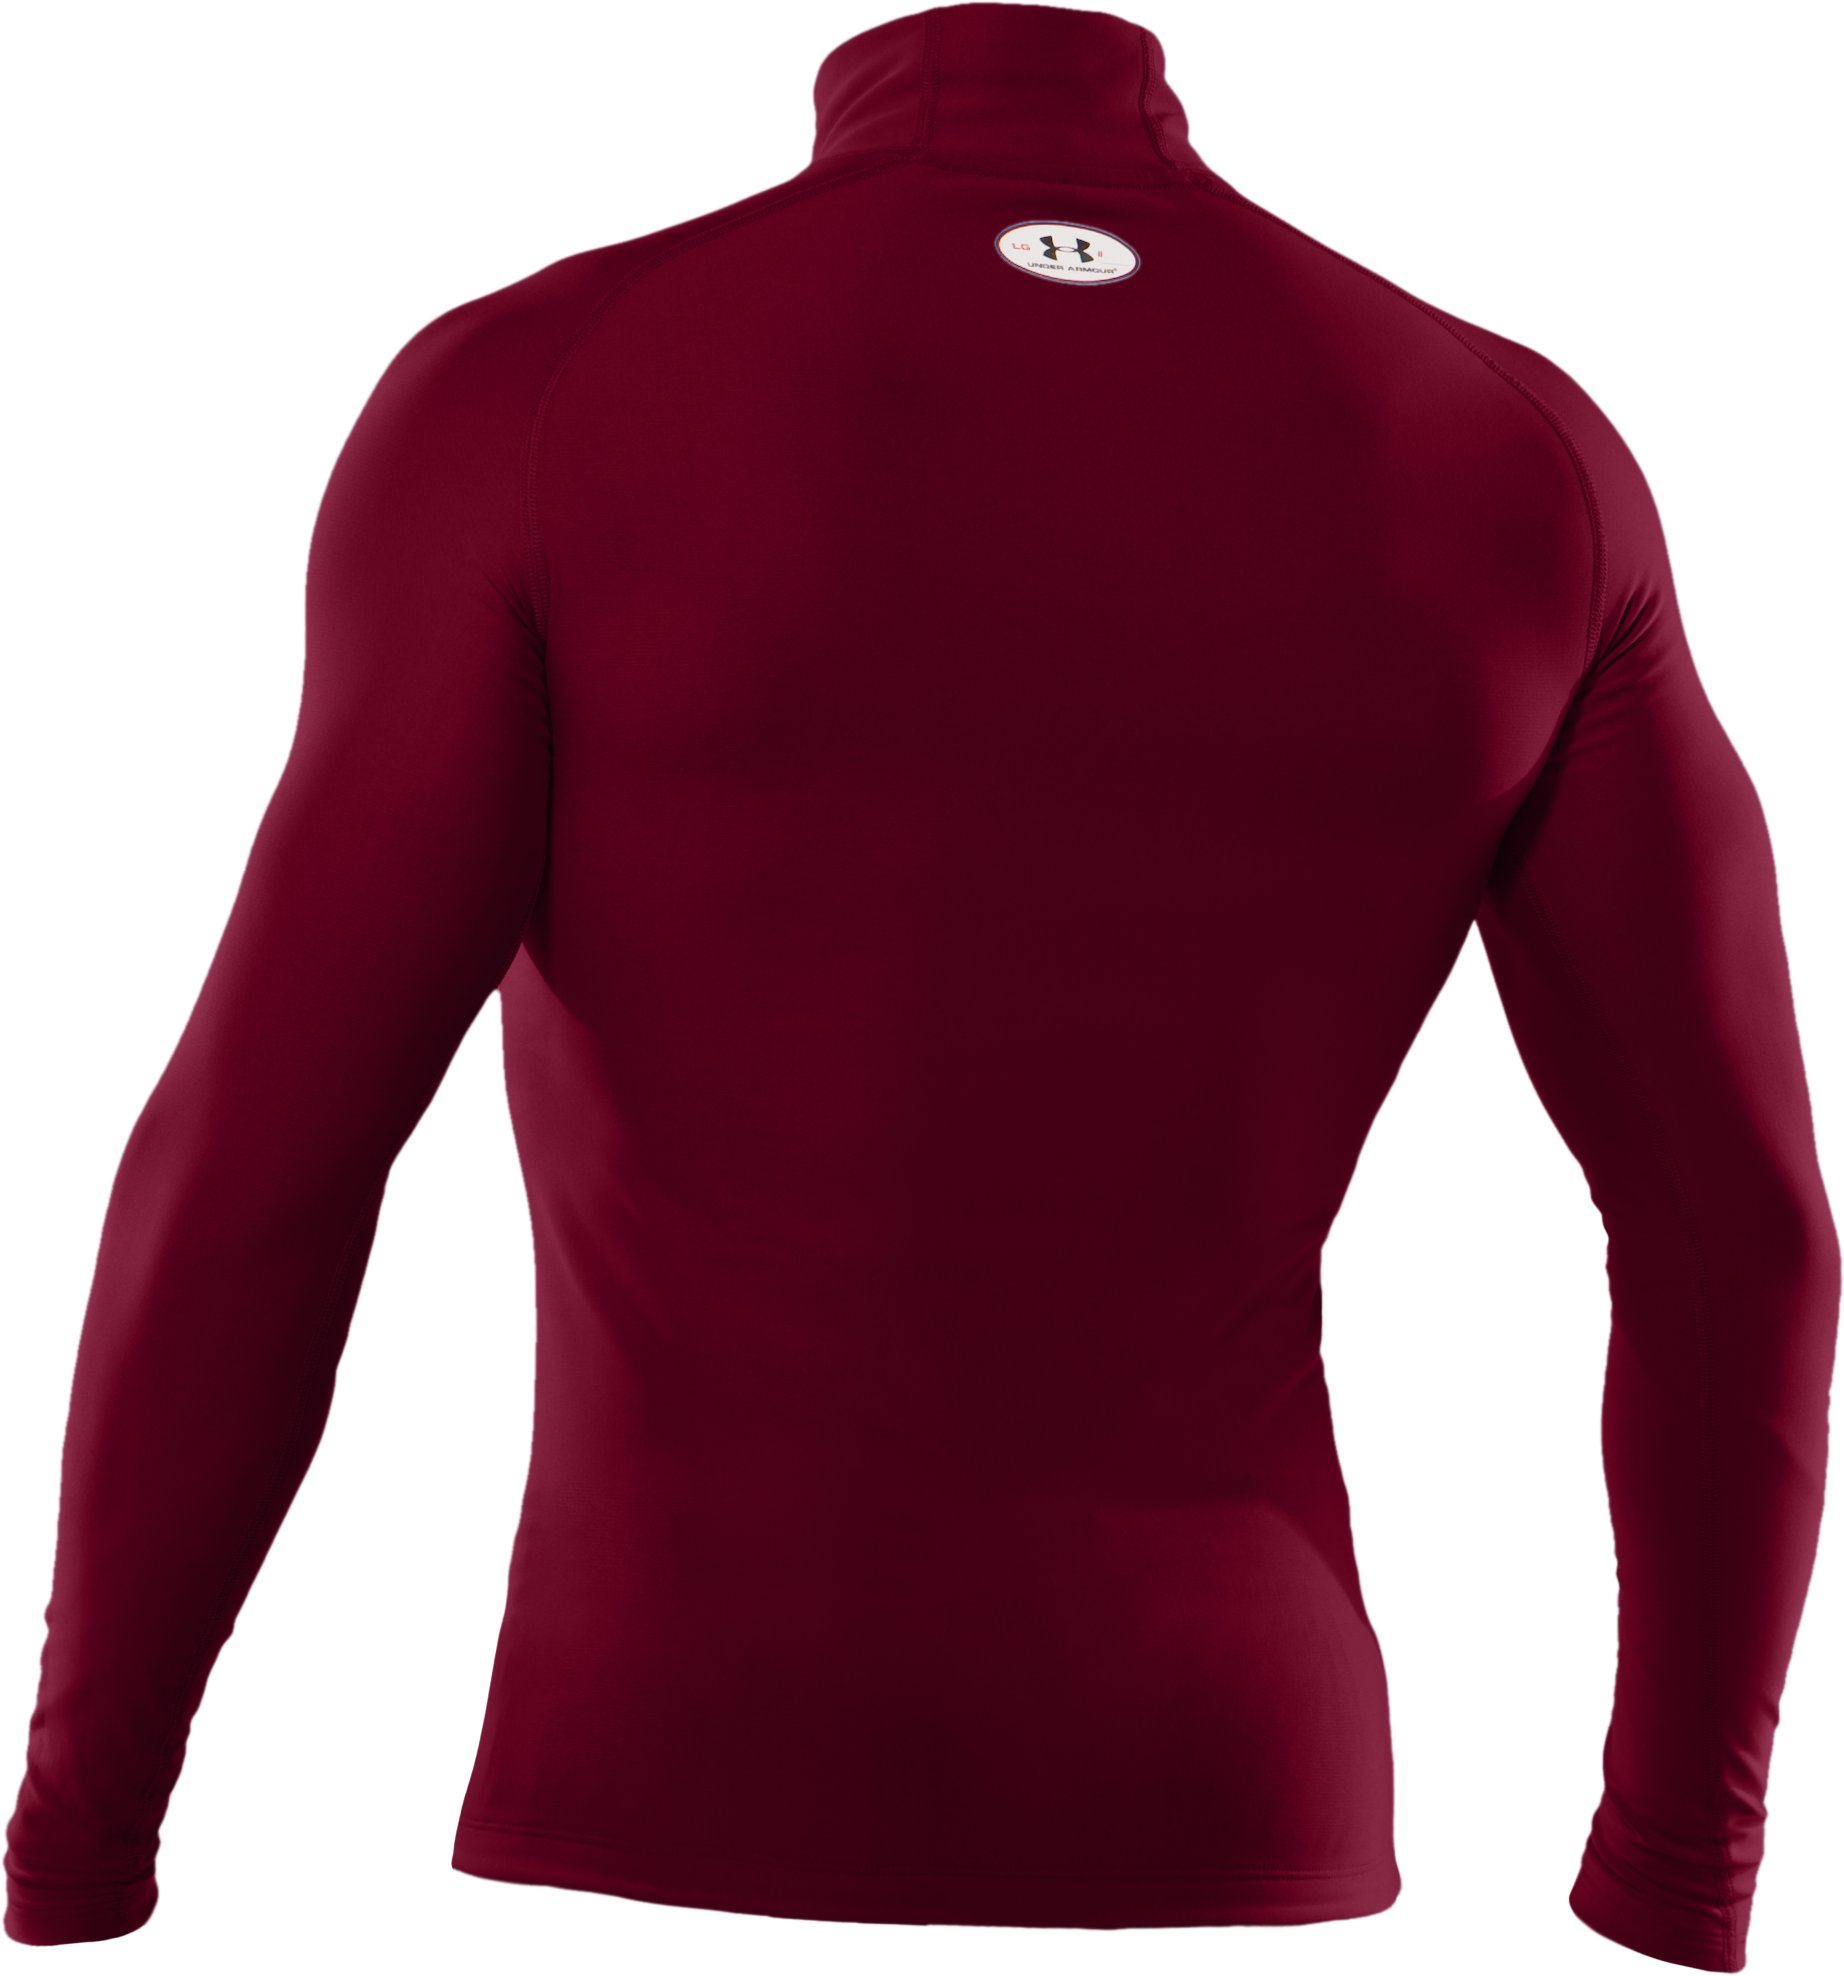 Men's ColdGear® Evo Long Sleeve Compression Mock, Maroon,